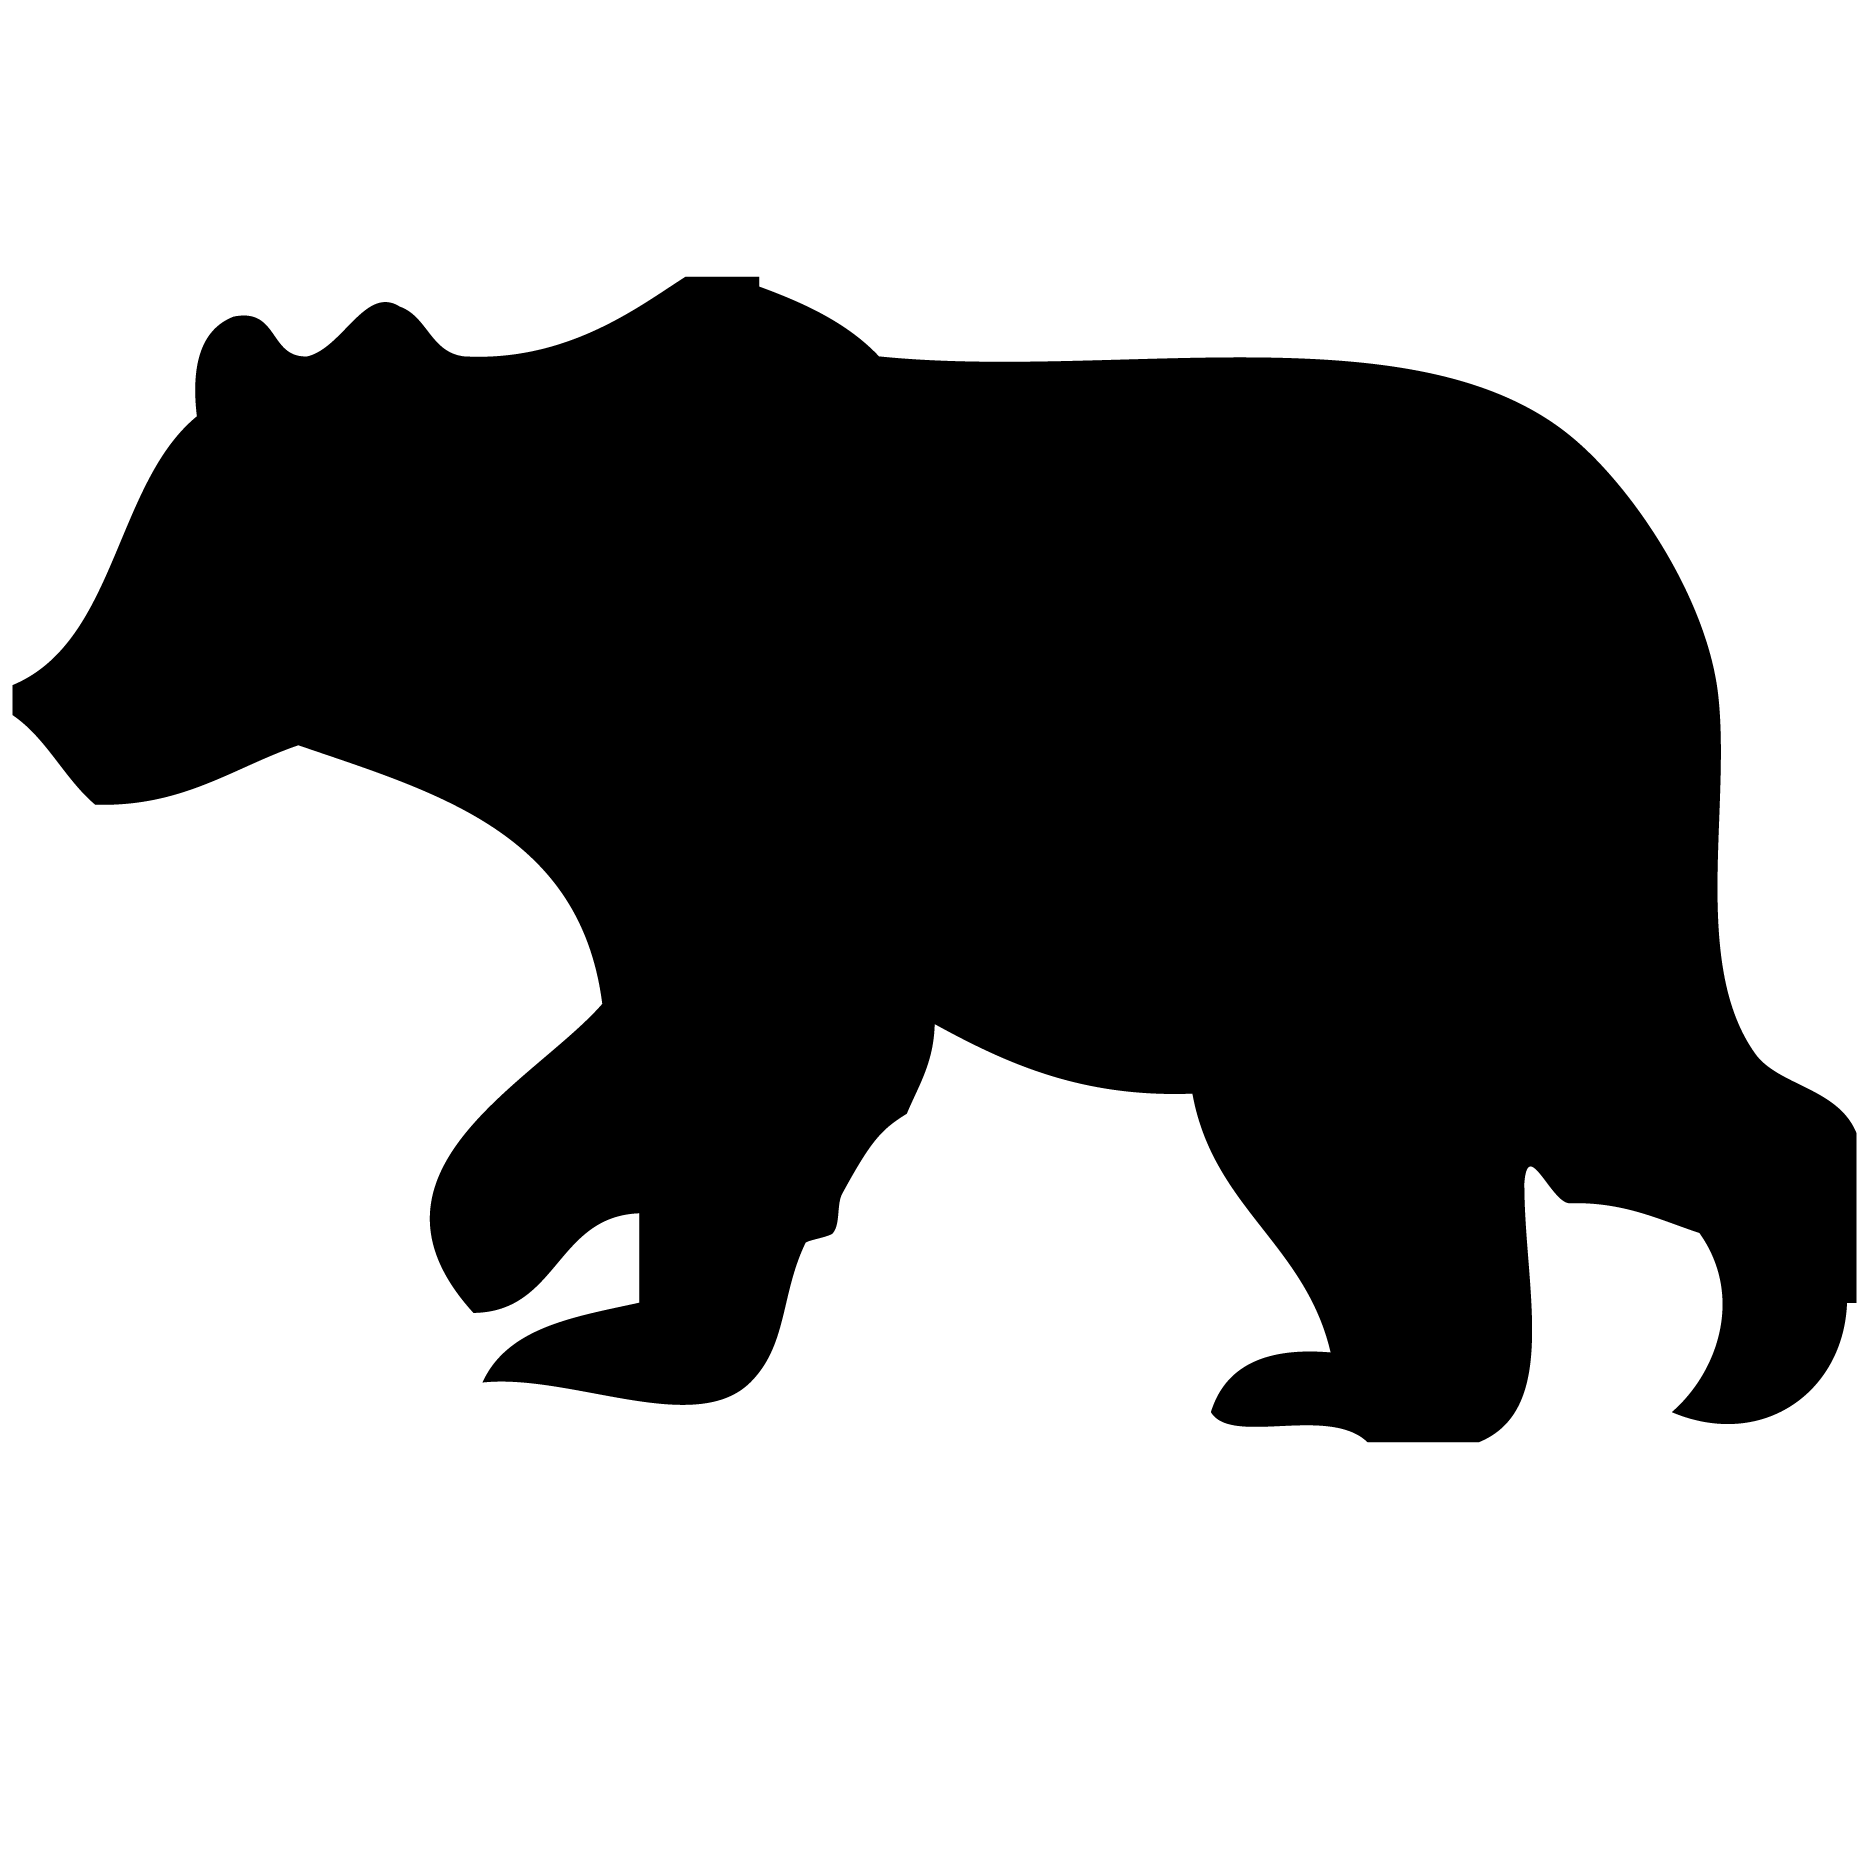 clip free stock Grizzly clipart wild bear. Woodland animals silhouette at